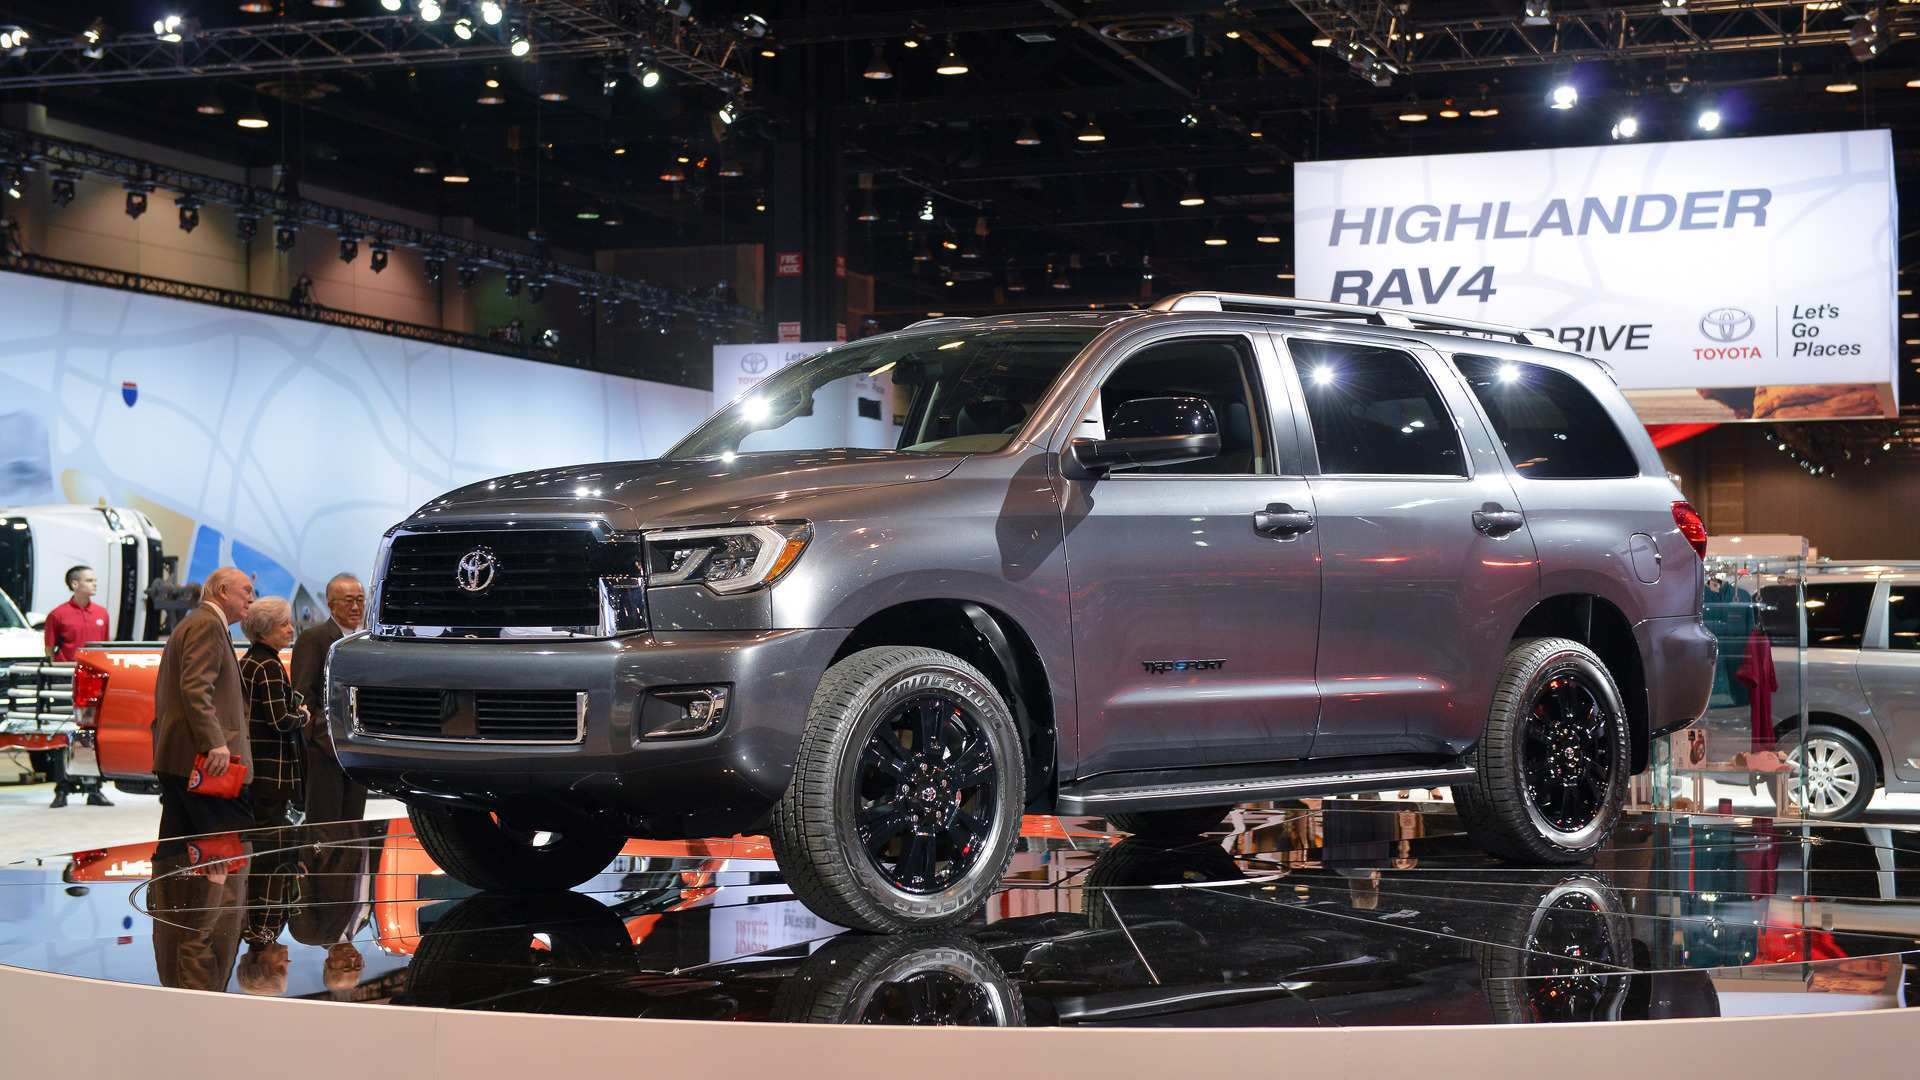 42 Best Review 2019 Toyota Sequoia Spy Photos Price Spesification with 2019 Toyota Sequoia Spy Photos Price